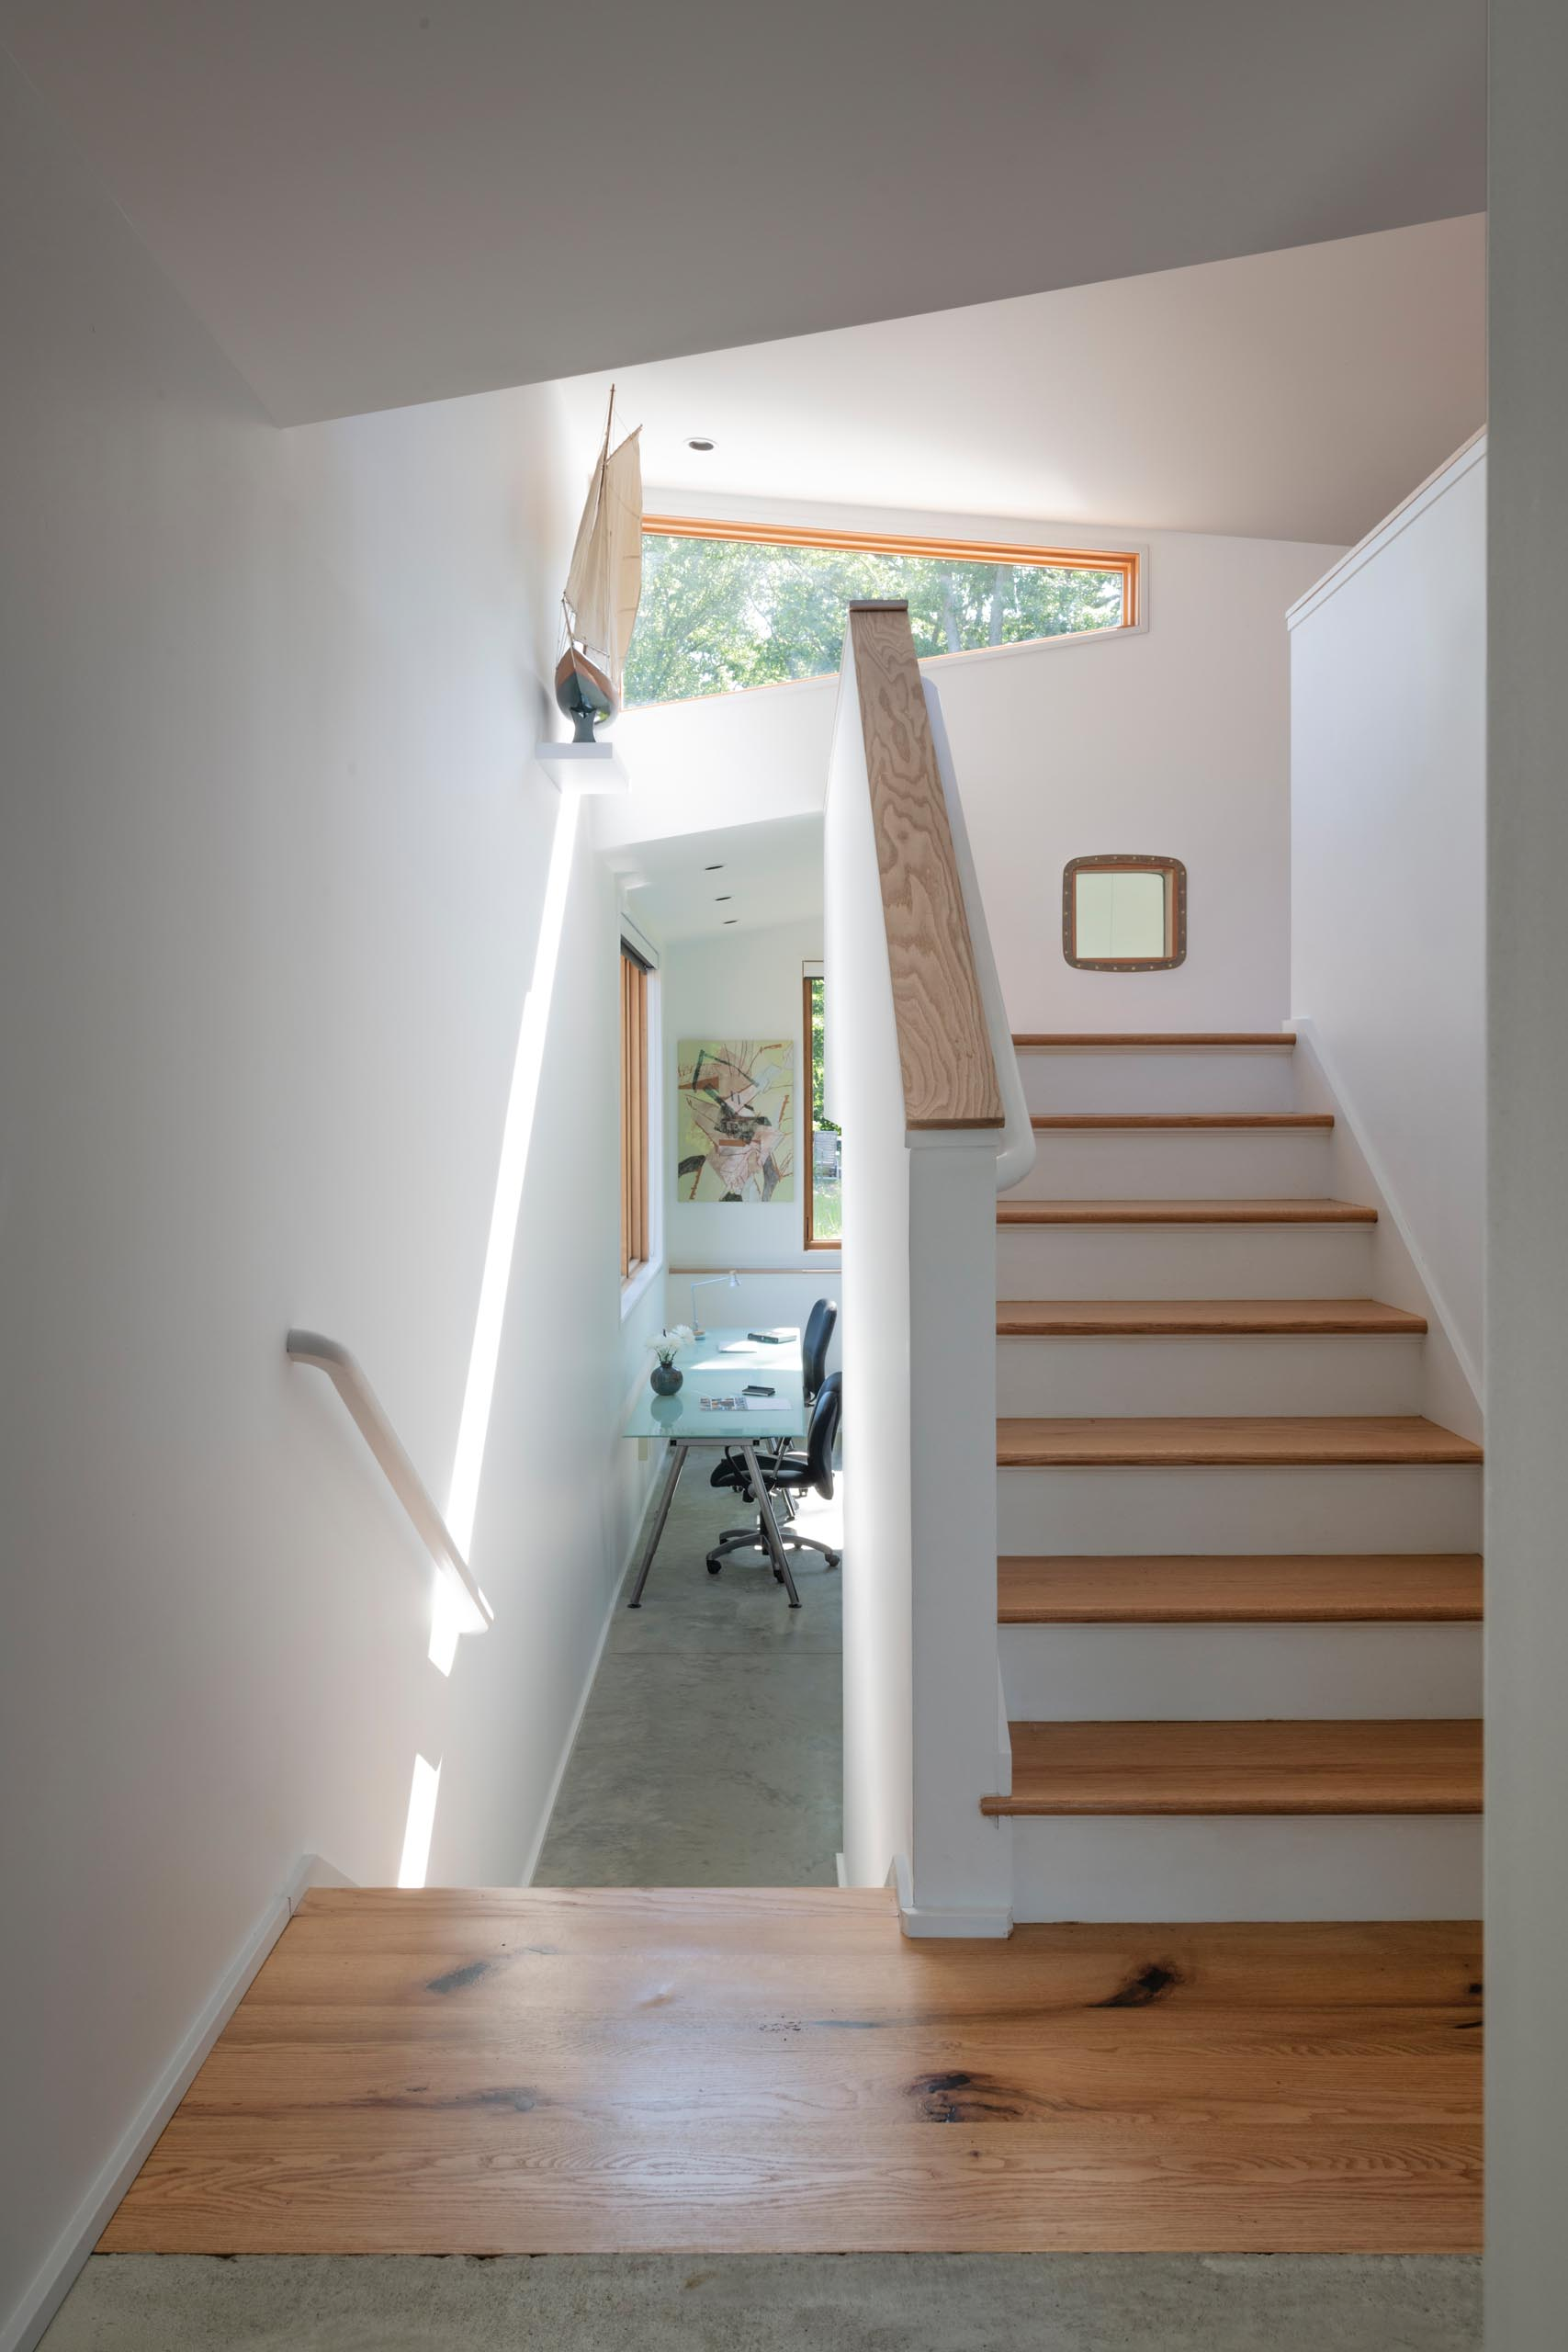 White stairs with wood treads lead to a lofted area in this modern home.